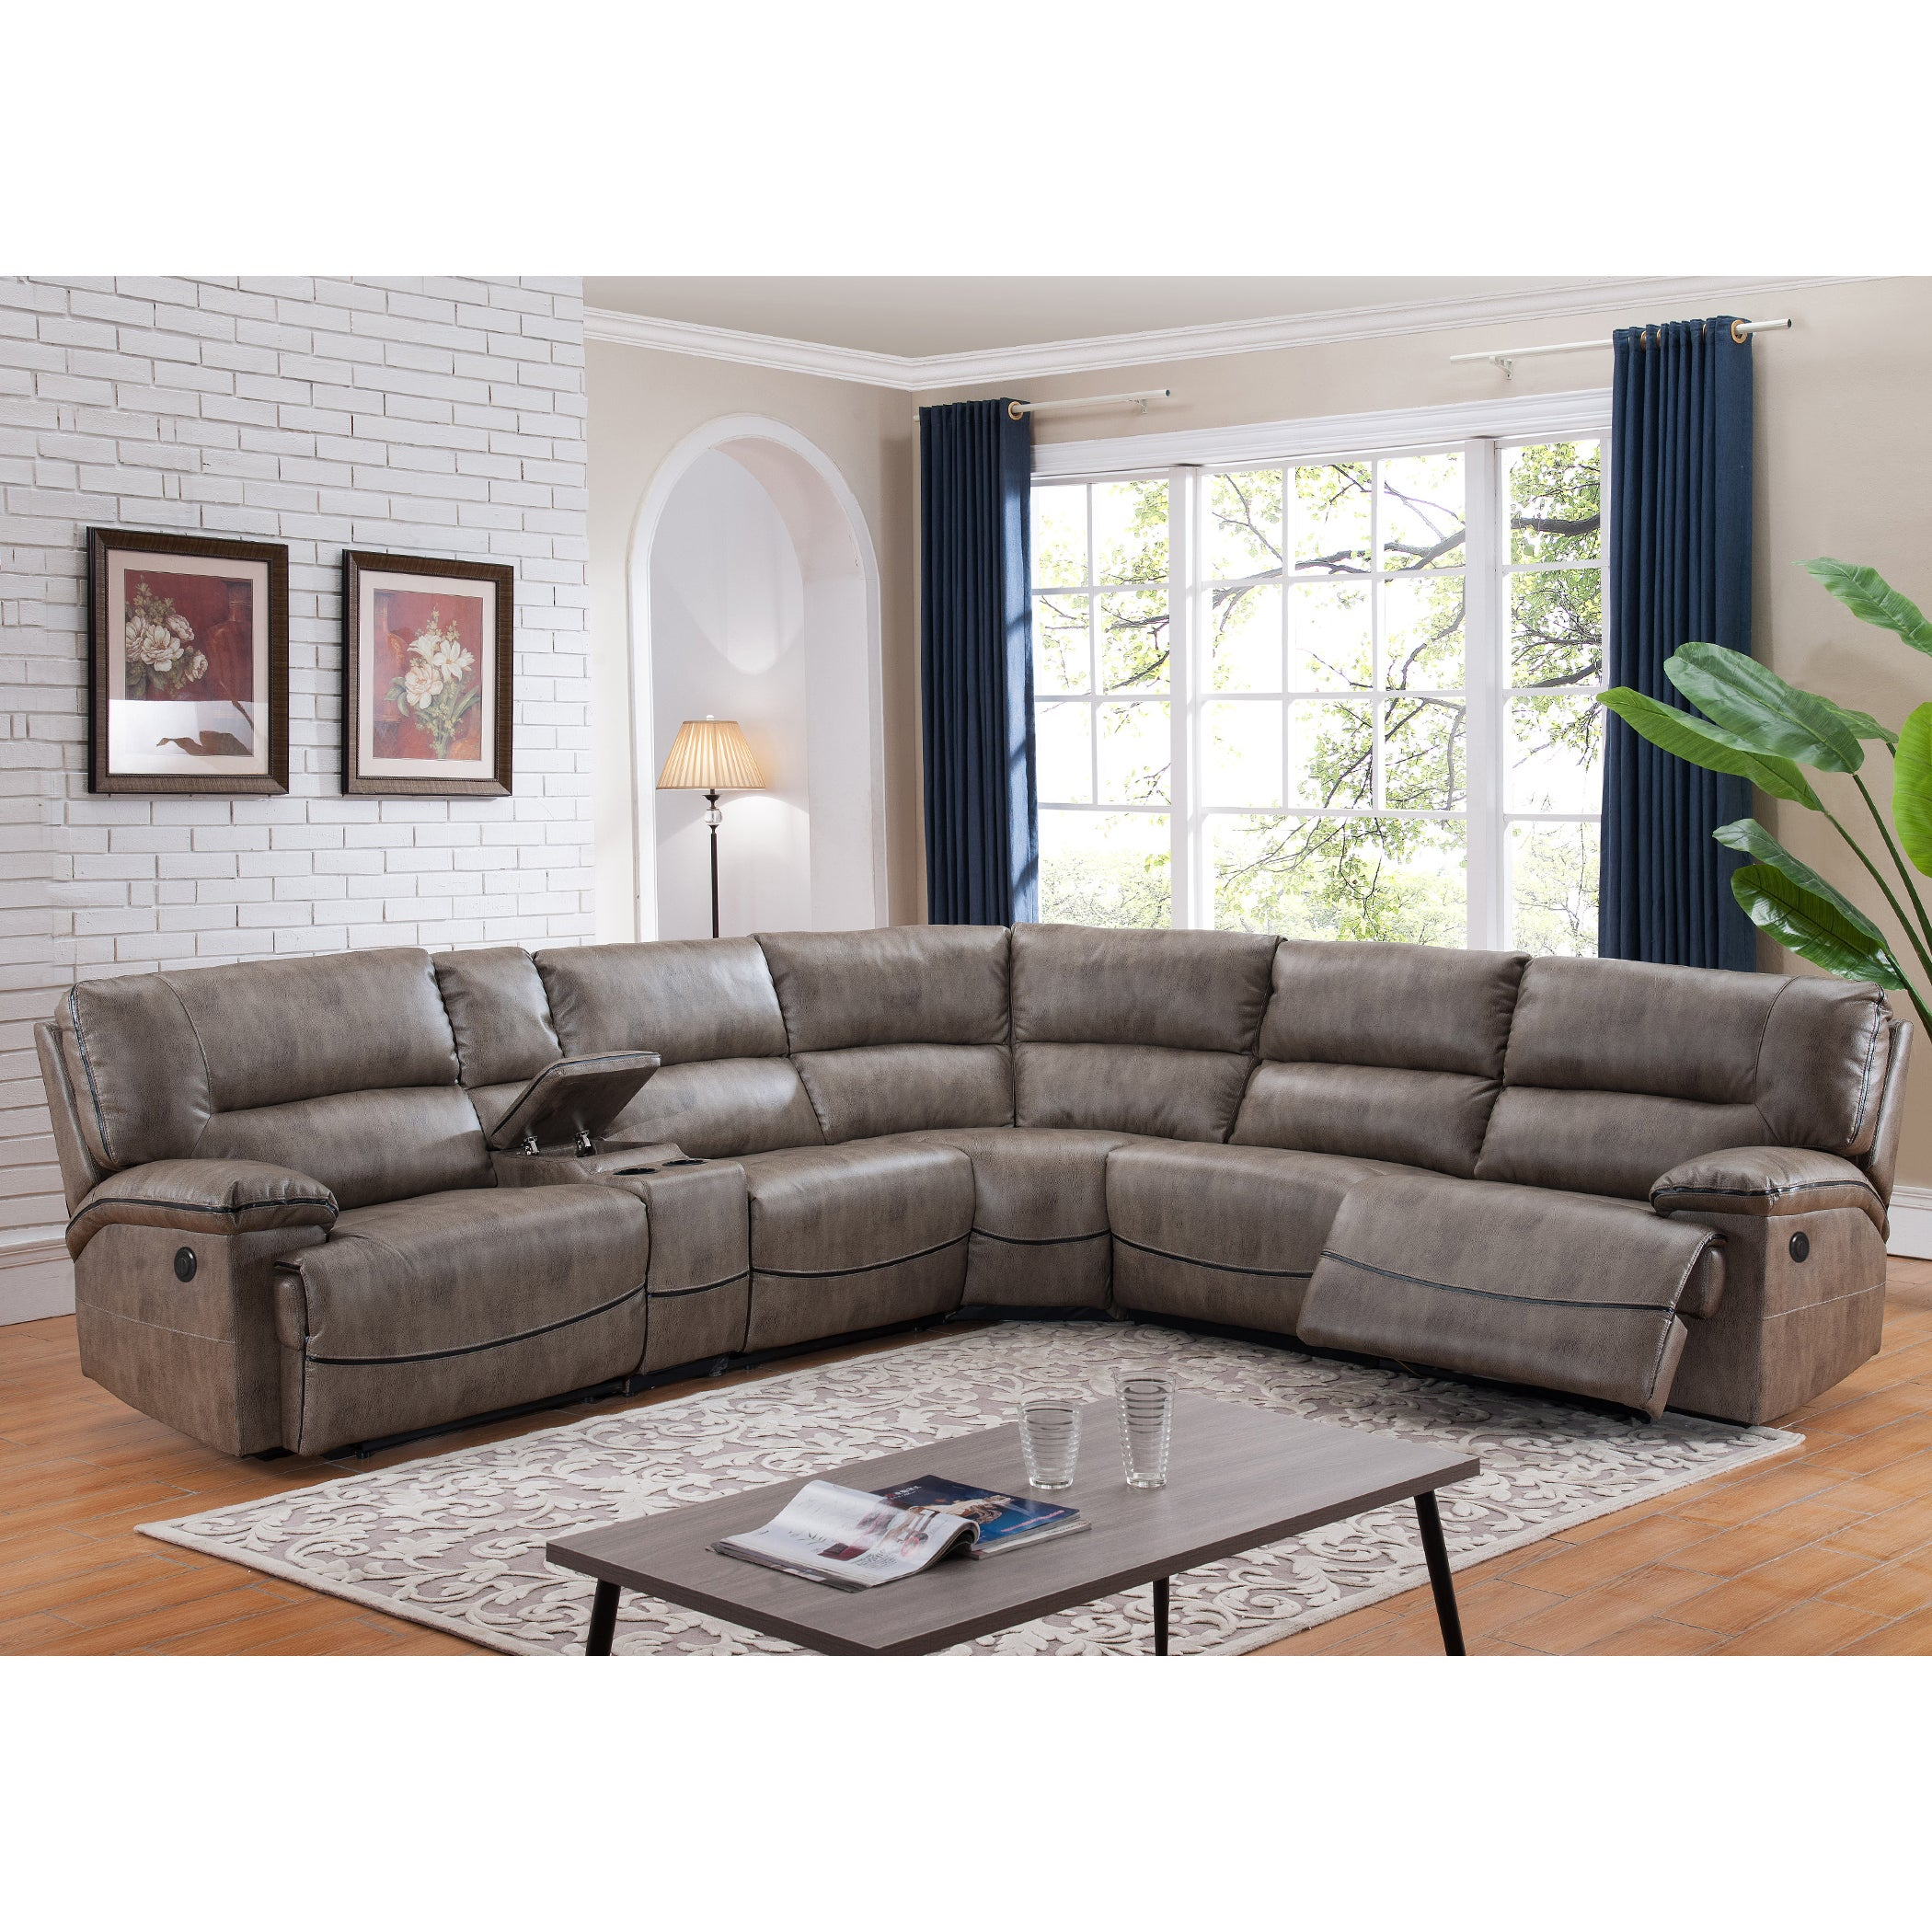 Donovan 6 Piece Sectional Sofa with Power Reclining Seats and Storage  Console